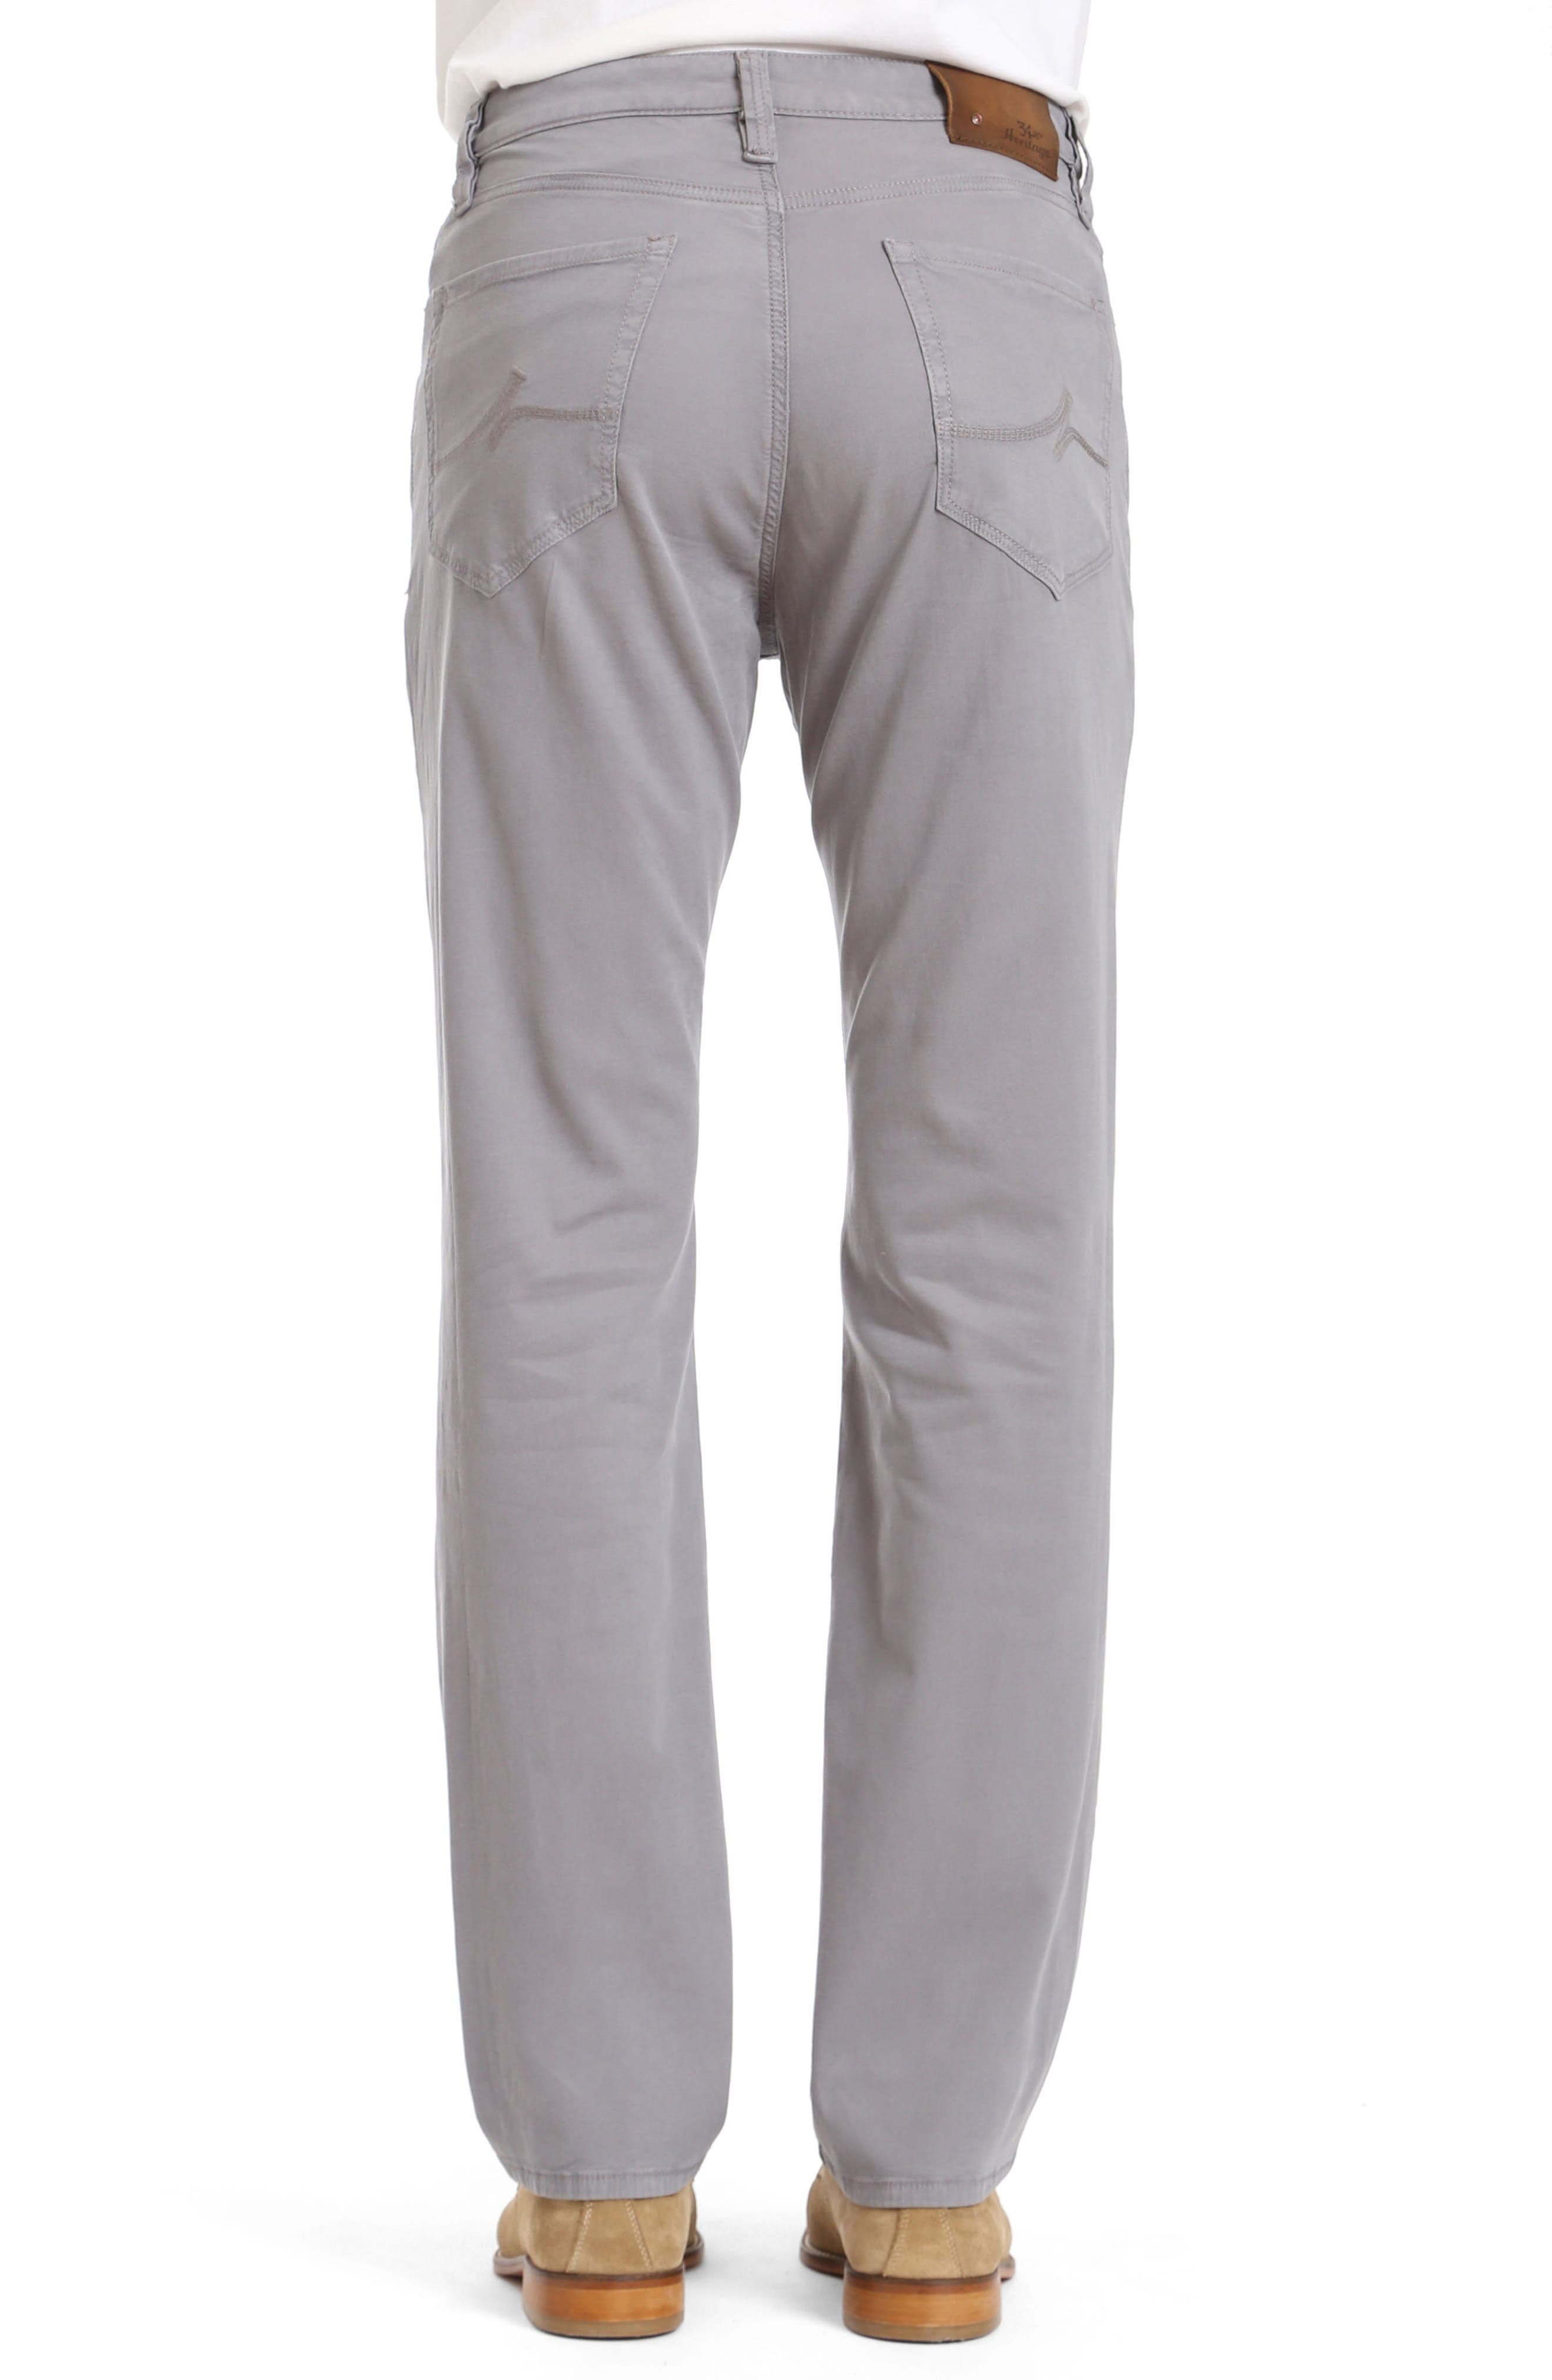 Charisma Relaxed Fit Twill Pants,                             Alternate thumbnail 2, color,                             Grey Fine Twill